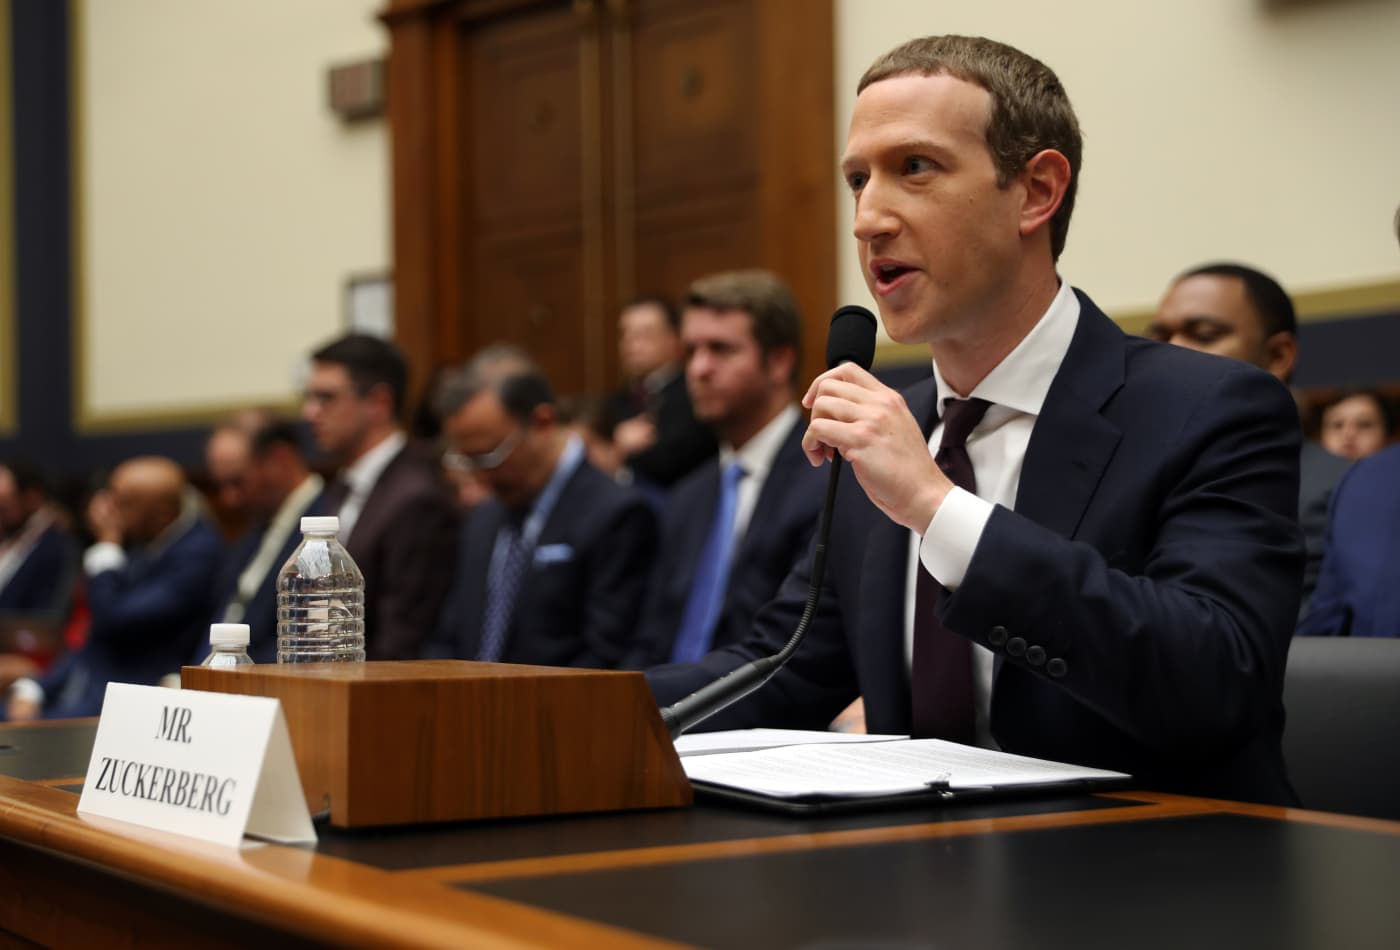 Zuckerberg: Facebook 'would be forced to leave' the Libra Association if it moves forward before regulators approve